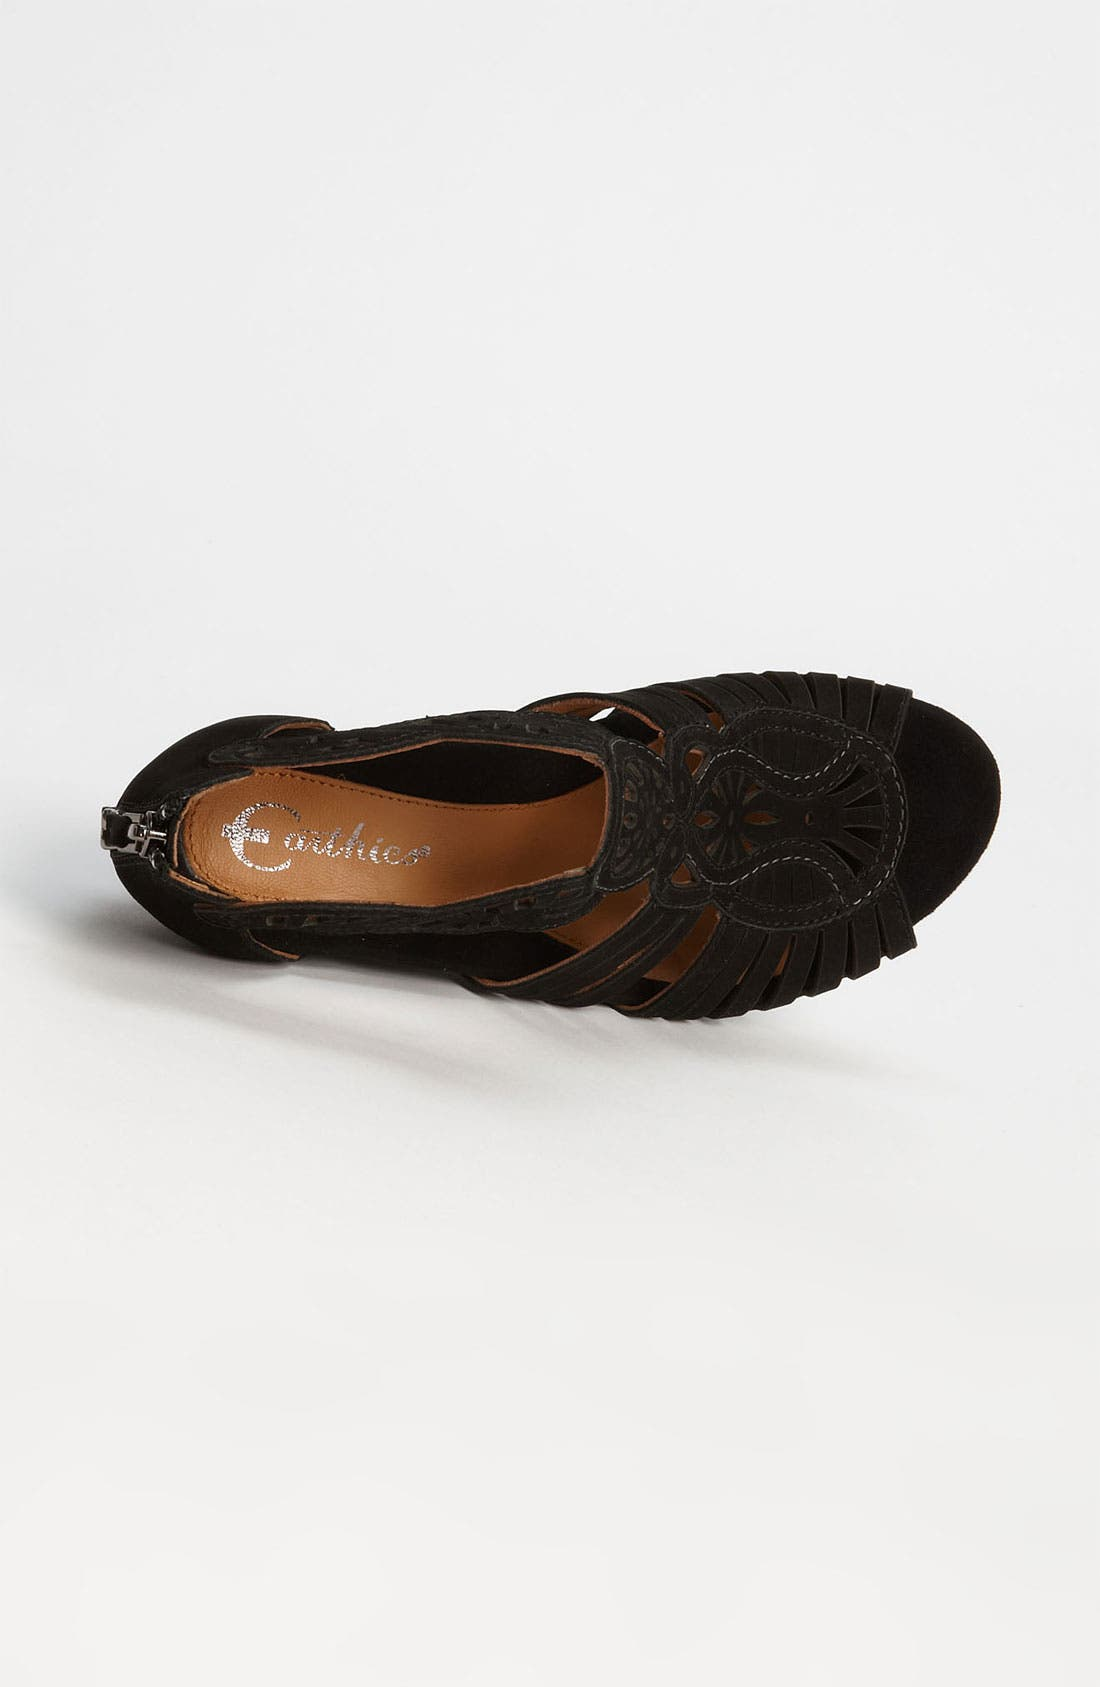 'Caradonna' Sandal,                             Alternate thumbnail 2, color,                             001